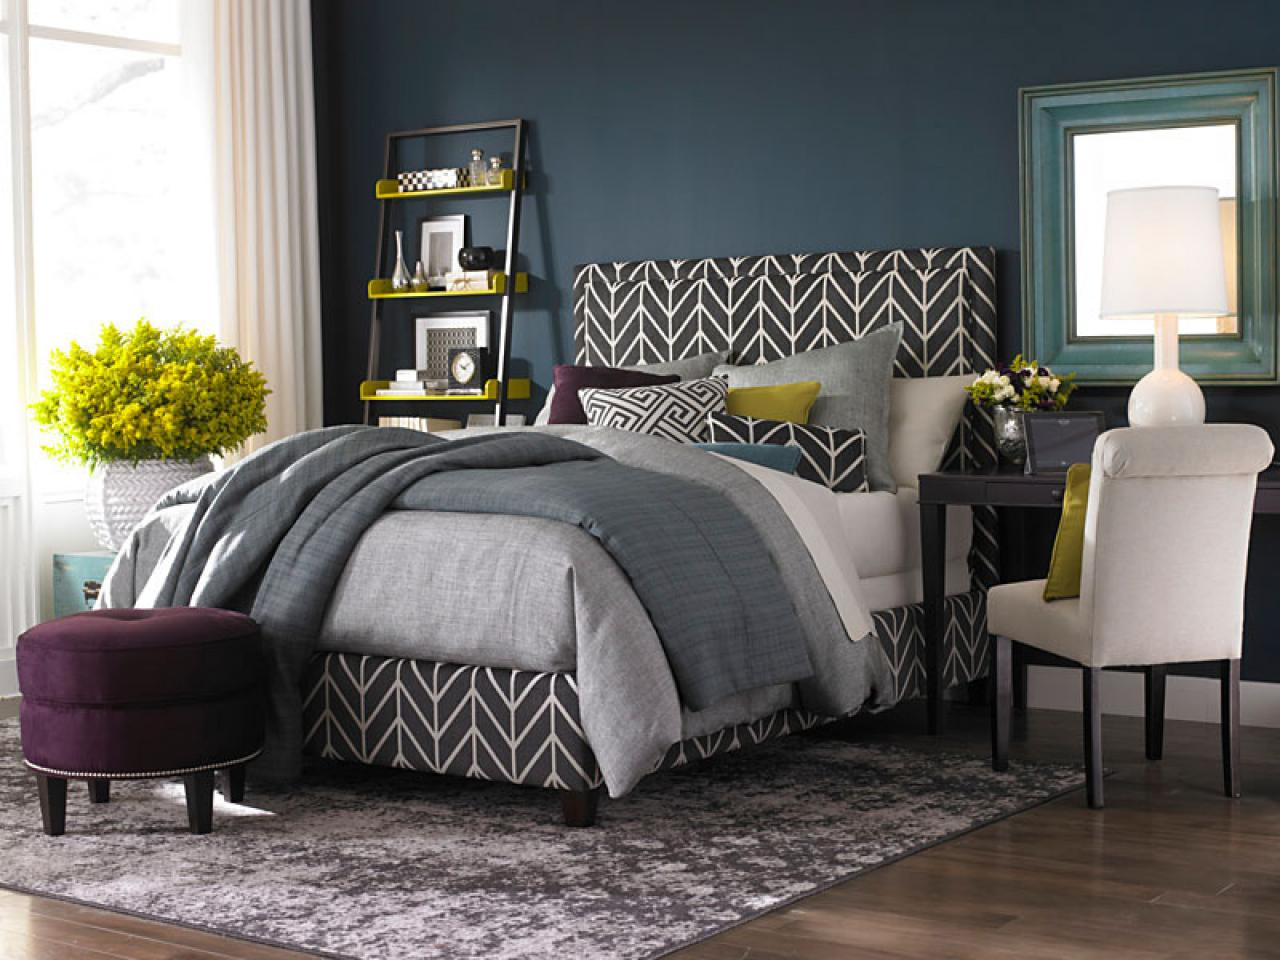 Bedroom designs for couples in blue - Designing The Bedroom As A Couple Hgtv S Decorating Design Blog Hgtv